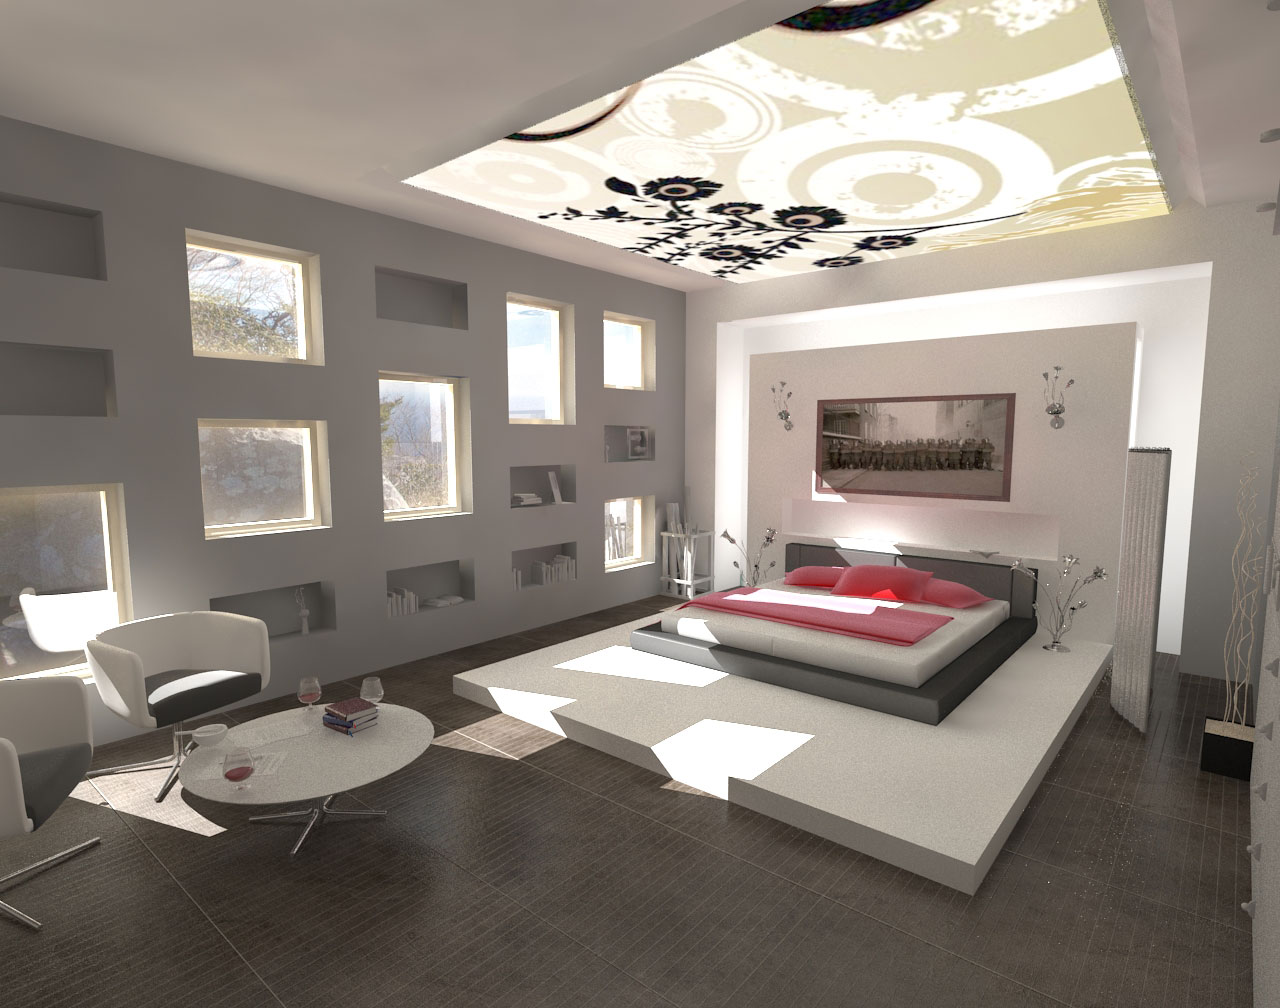 Decorations minimalist design modern bedroom interior for Bedroom interior design pictures